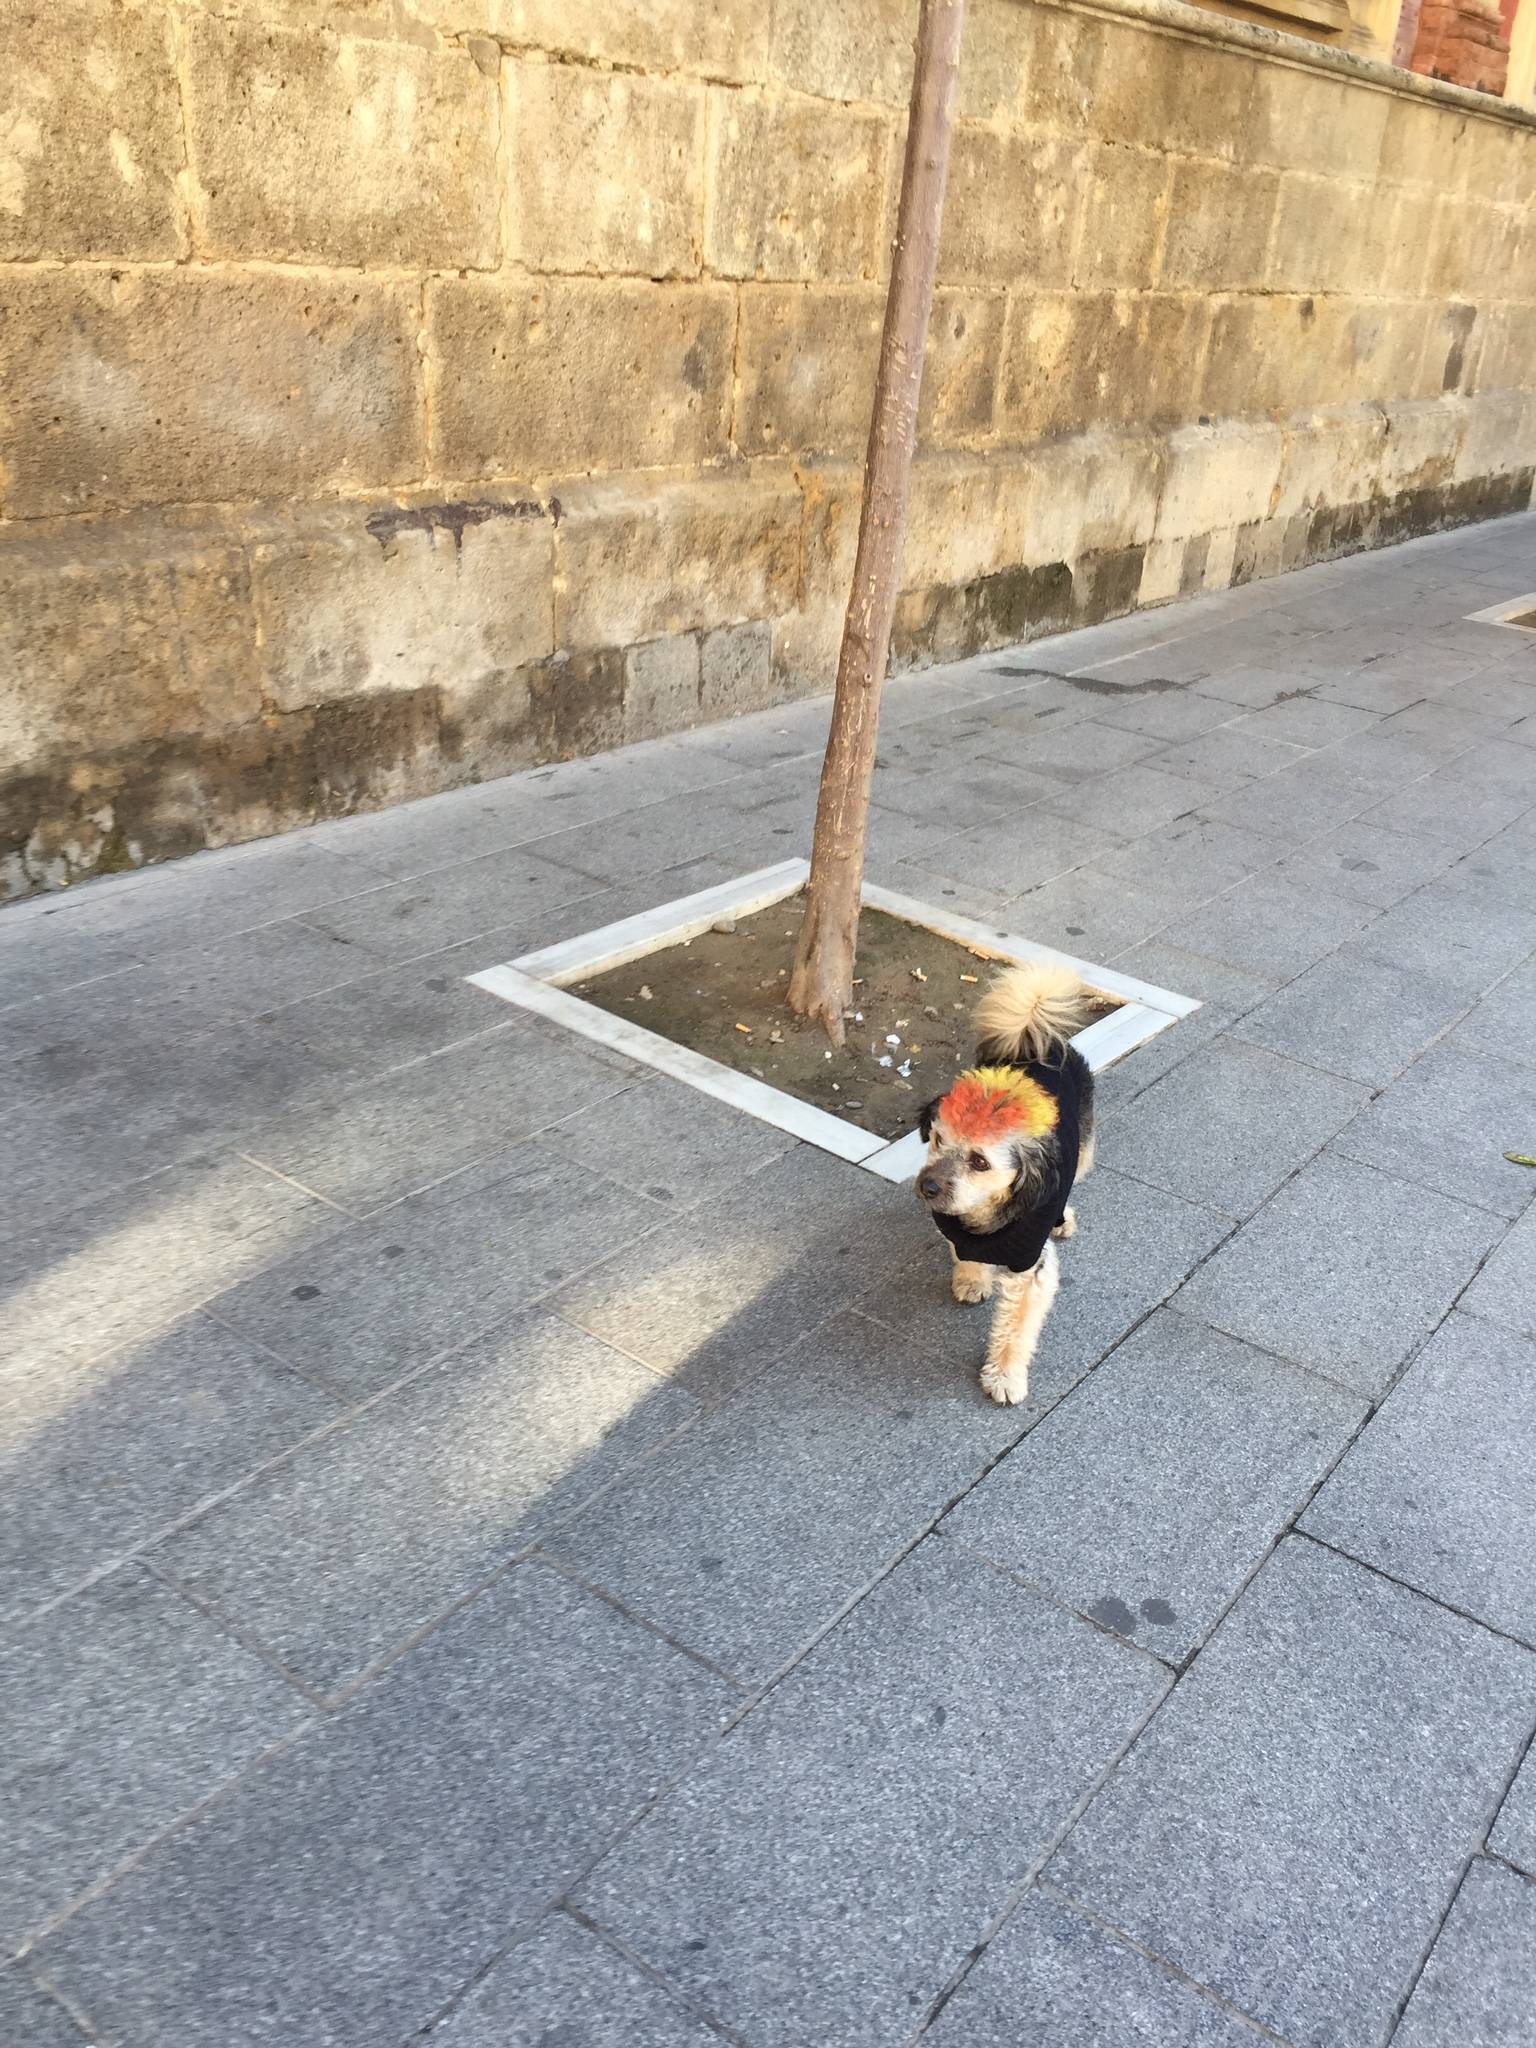 One of the many 'glamourdogs' of Seville.